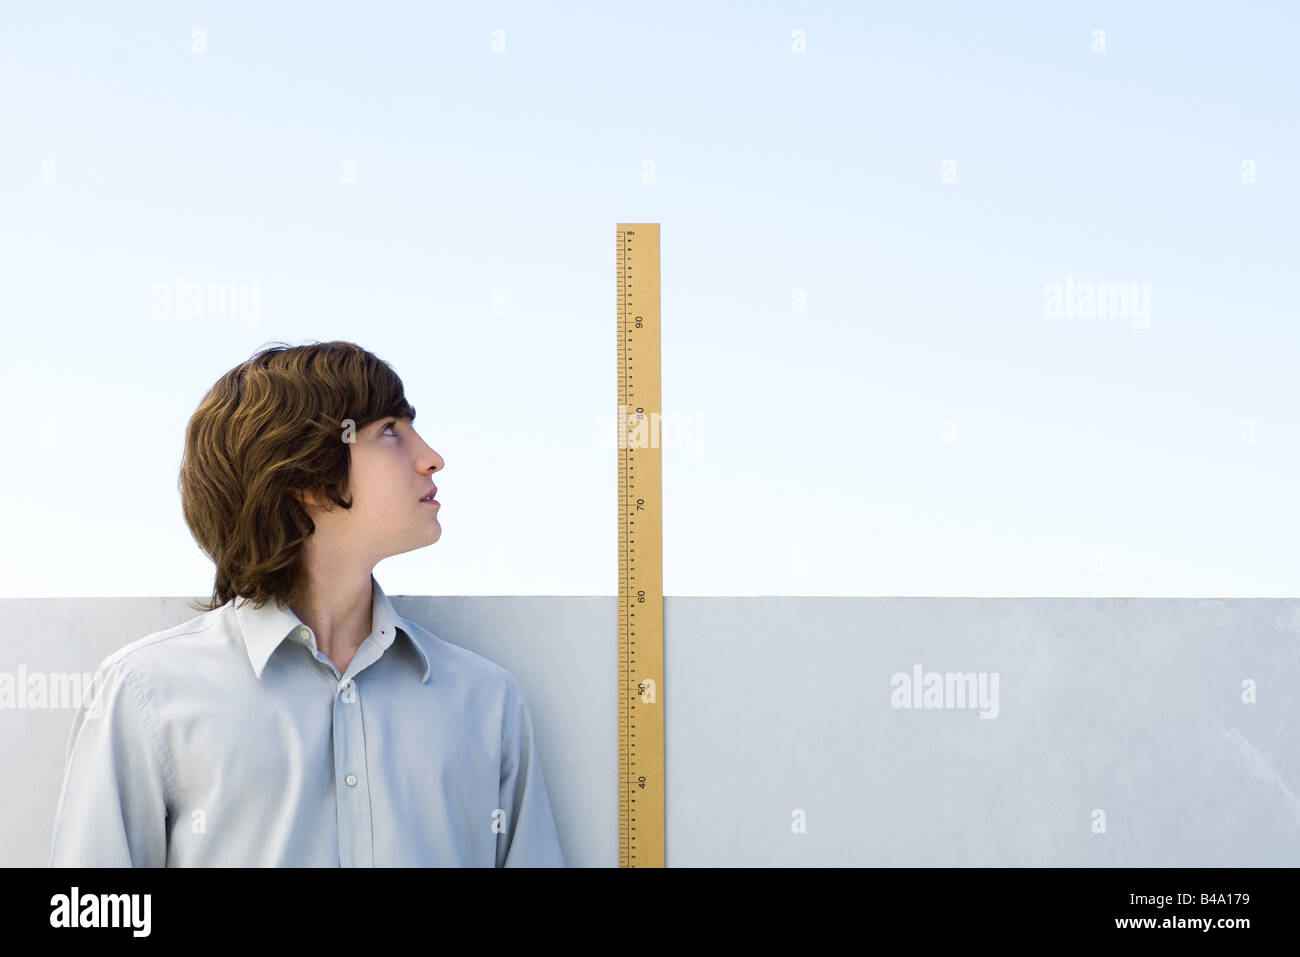 Young man measuring his height with ruler - Stock Image